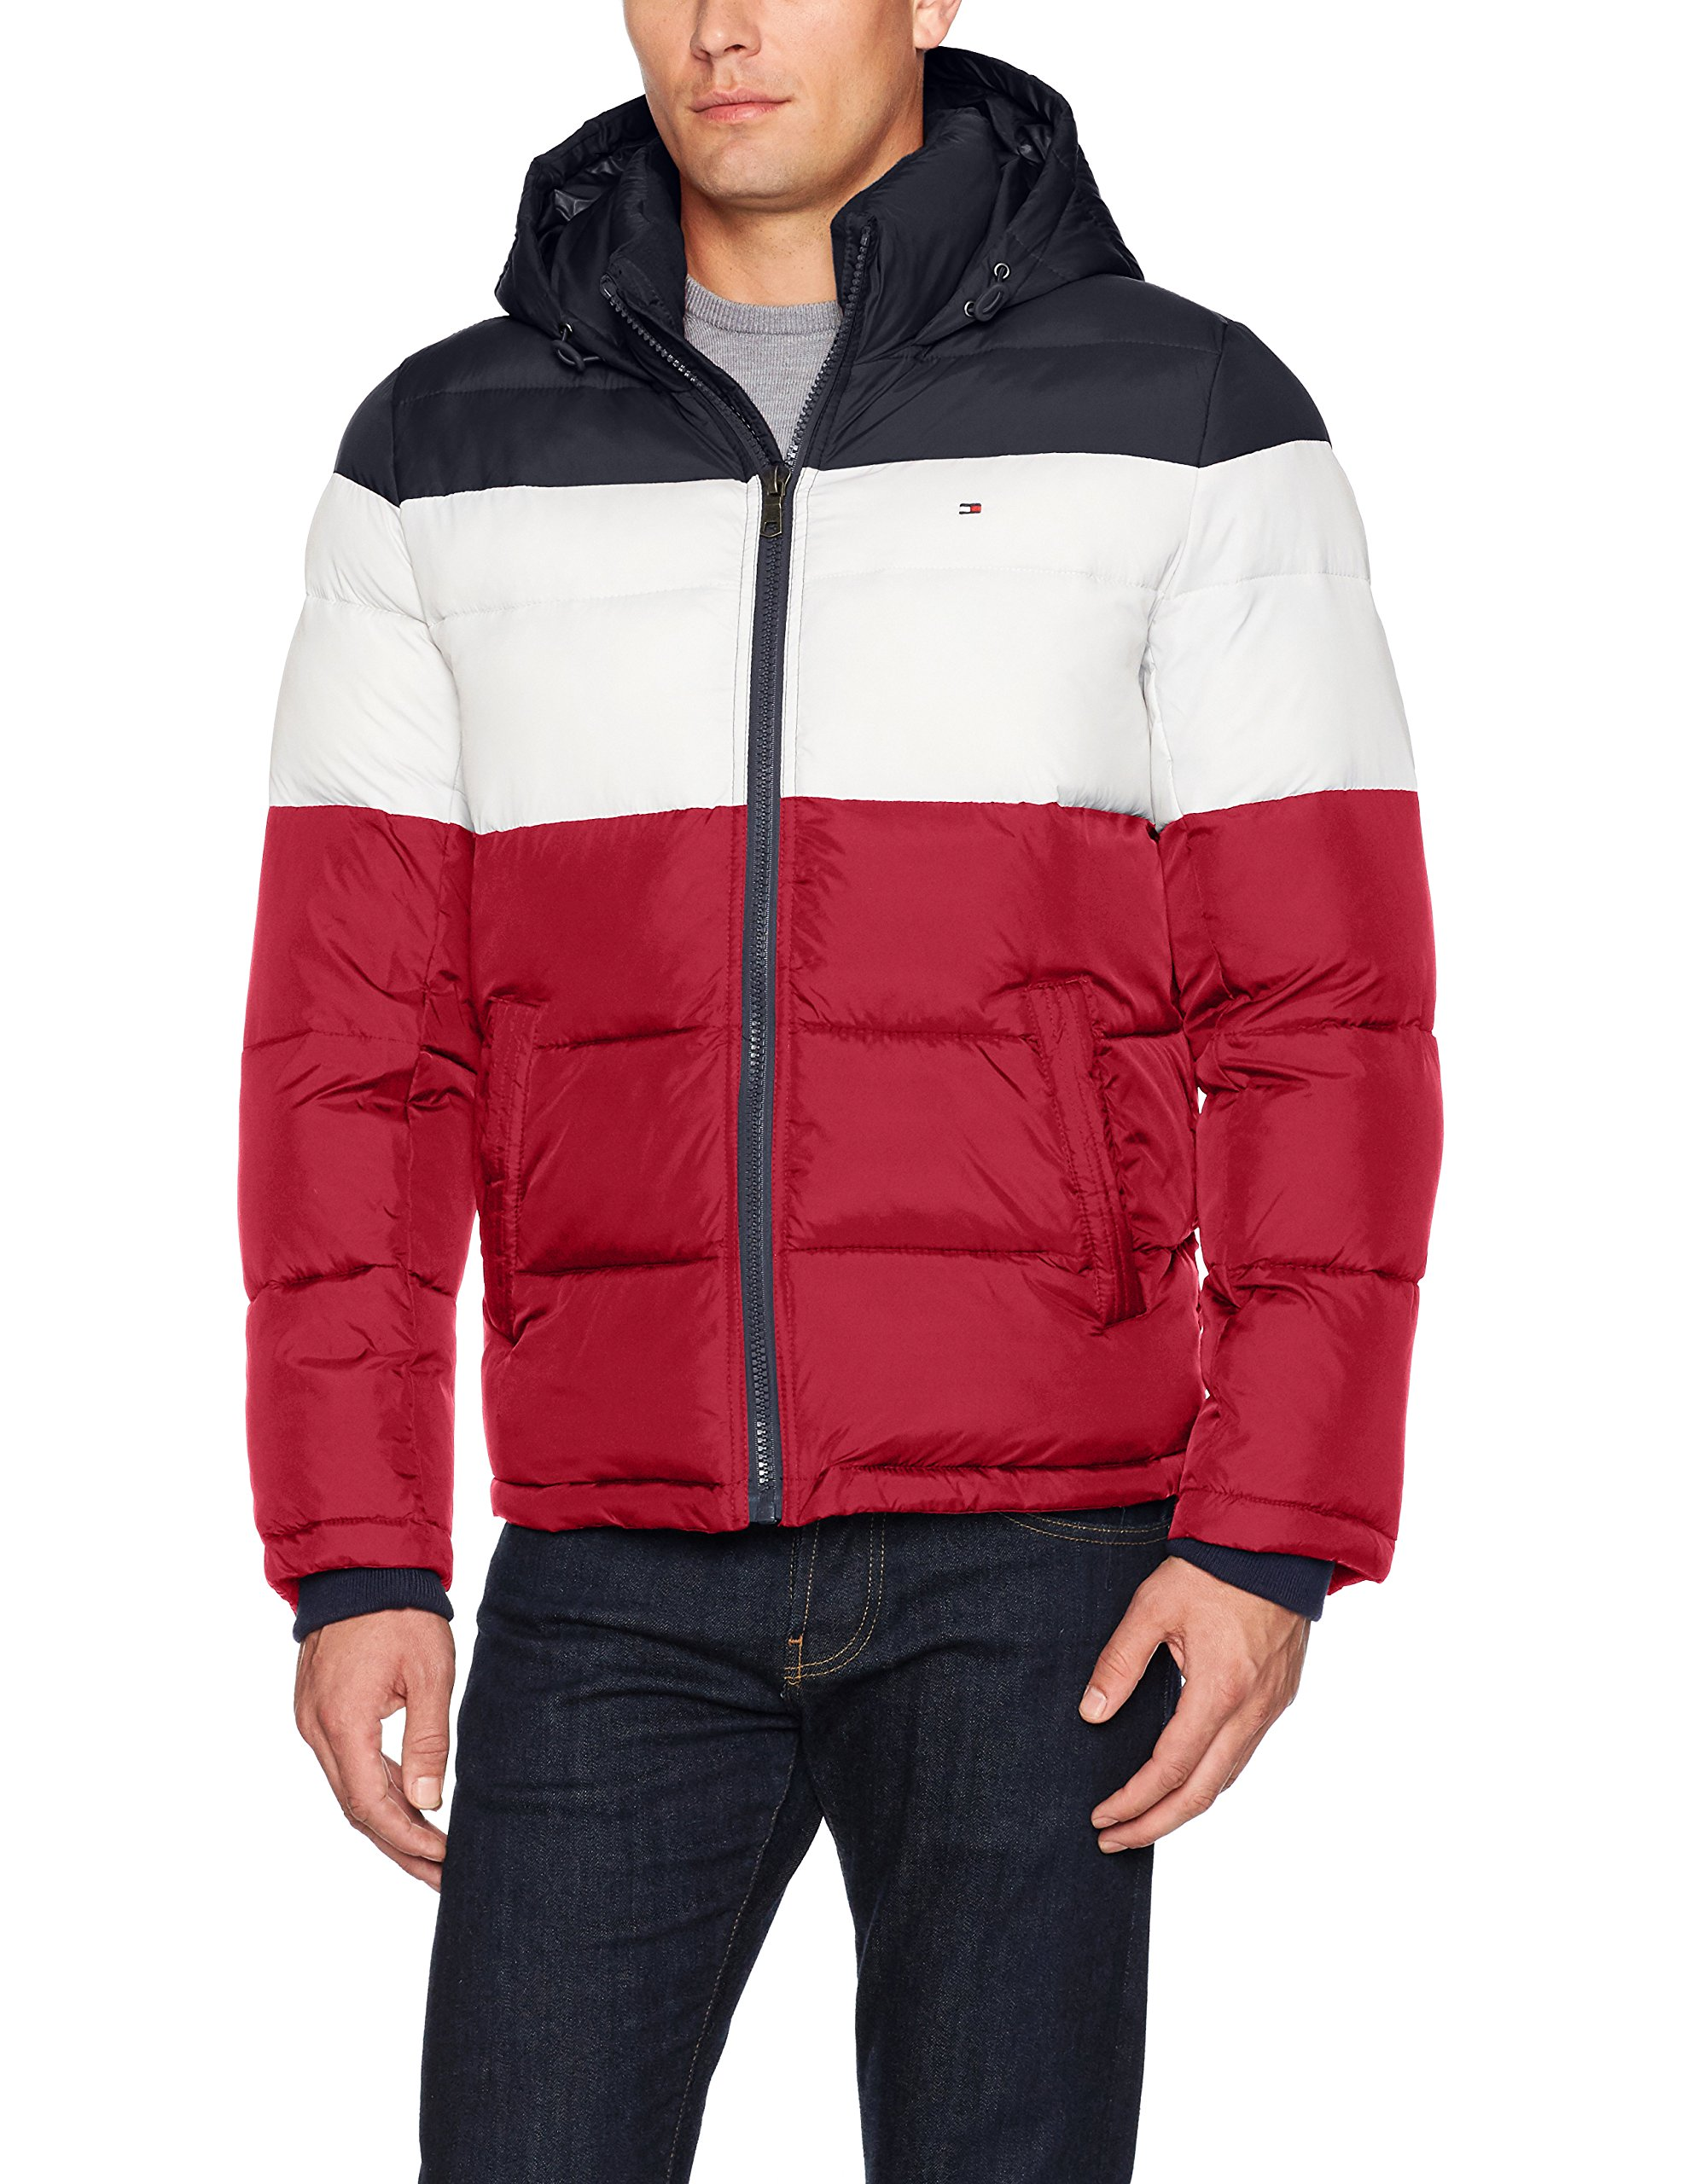 Tommy Hilfiger Men's Classic Hooded Puffer Jacket, Midnight/White/Red, Small